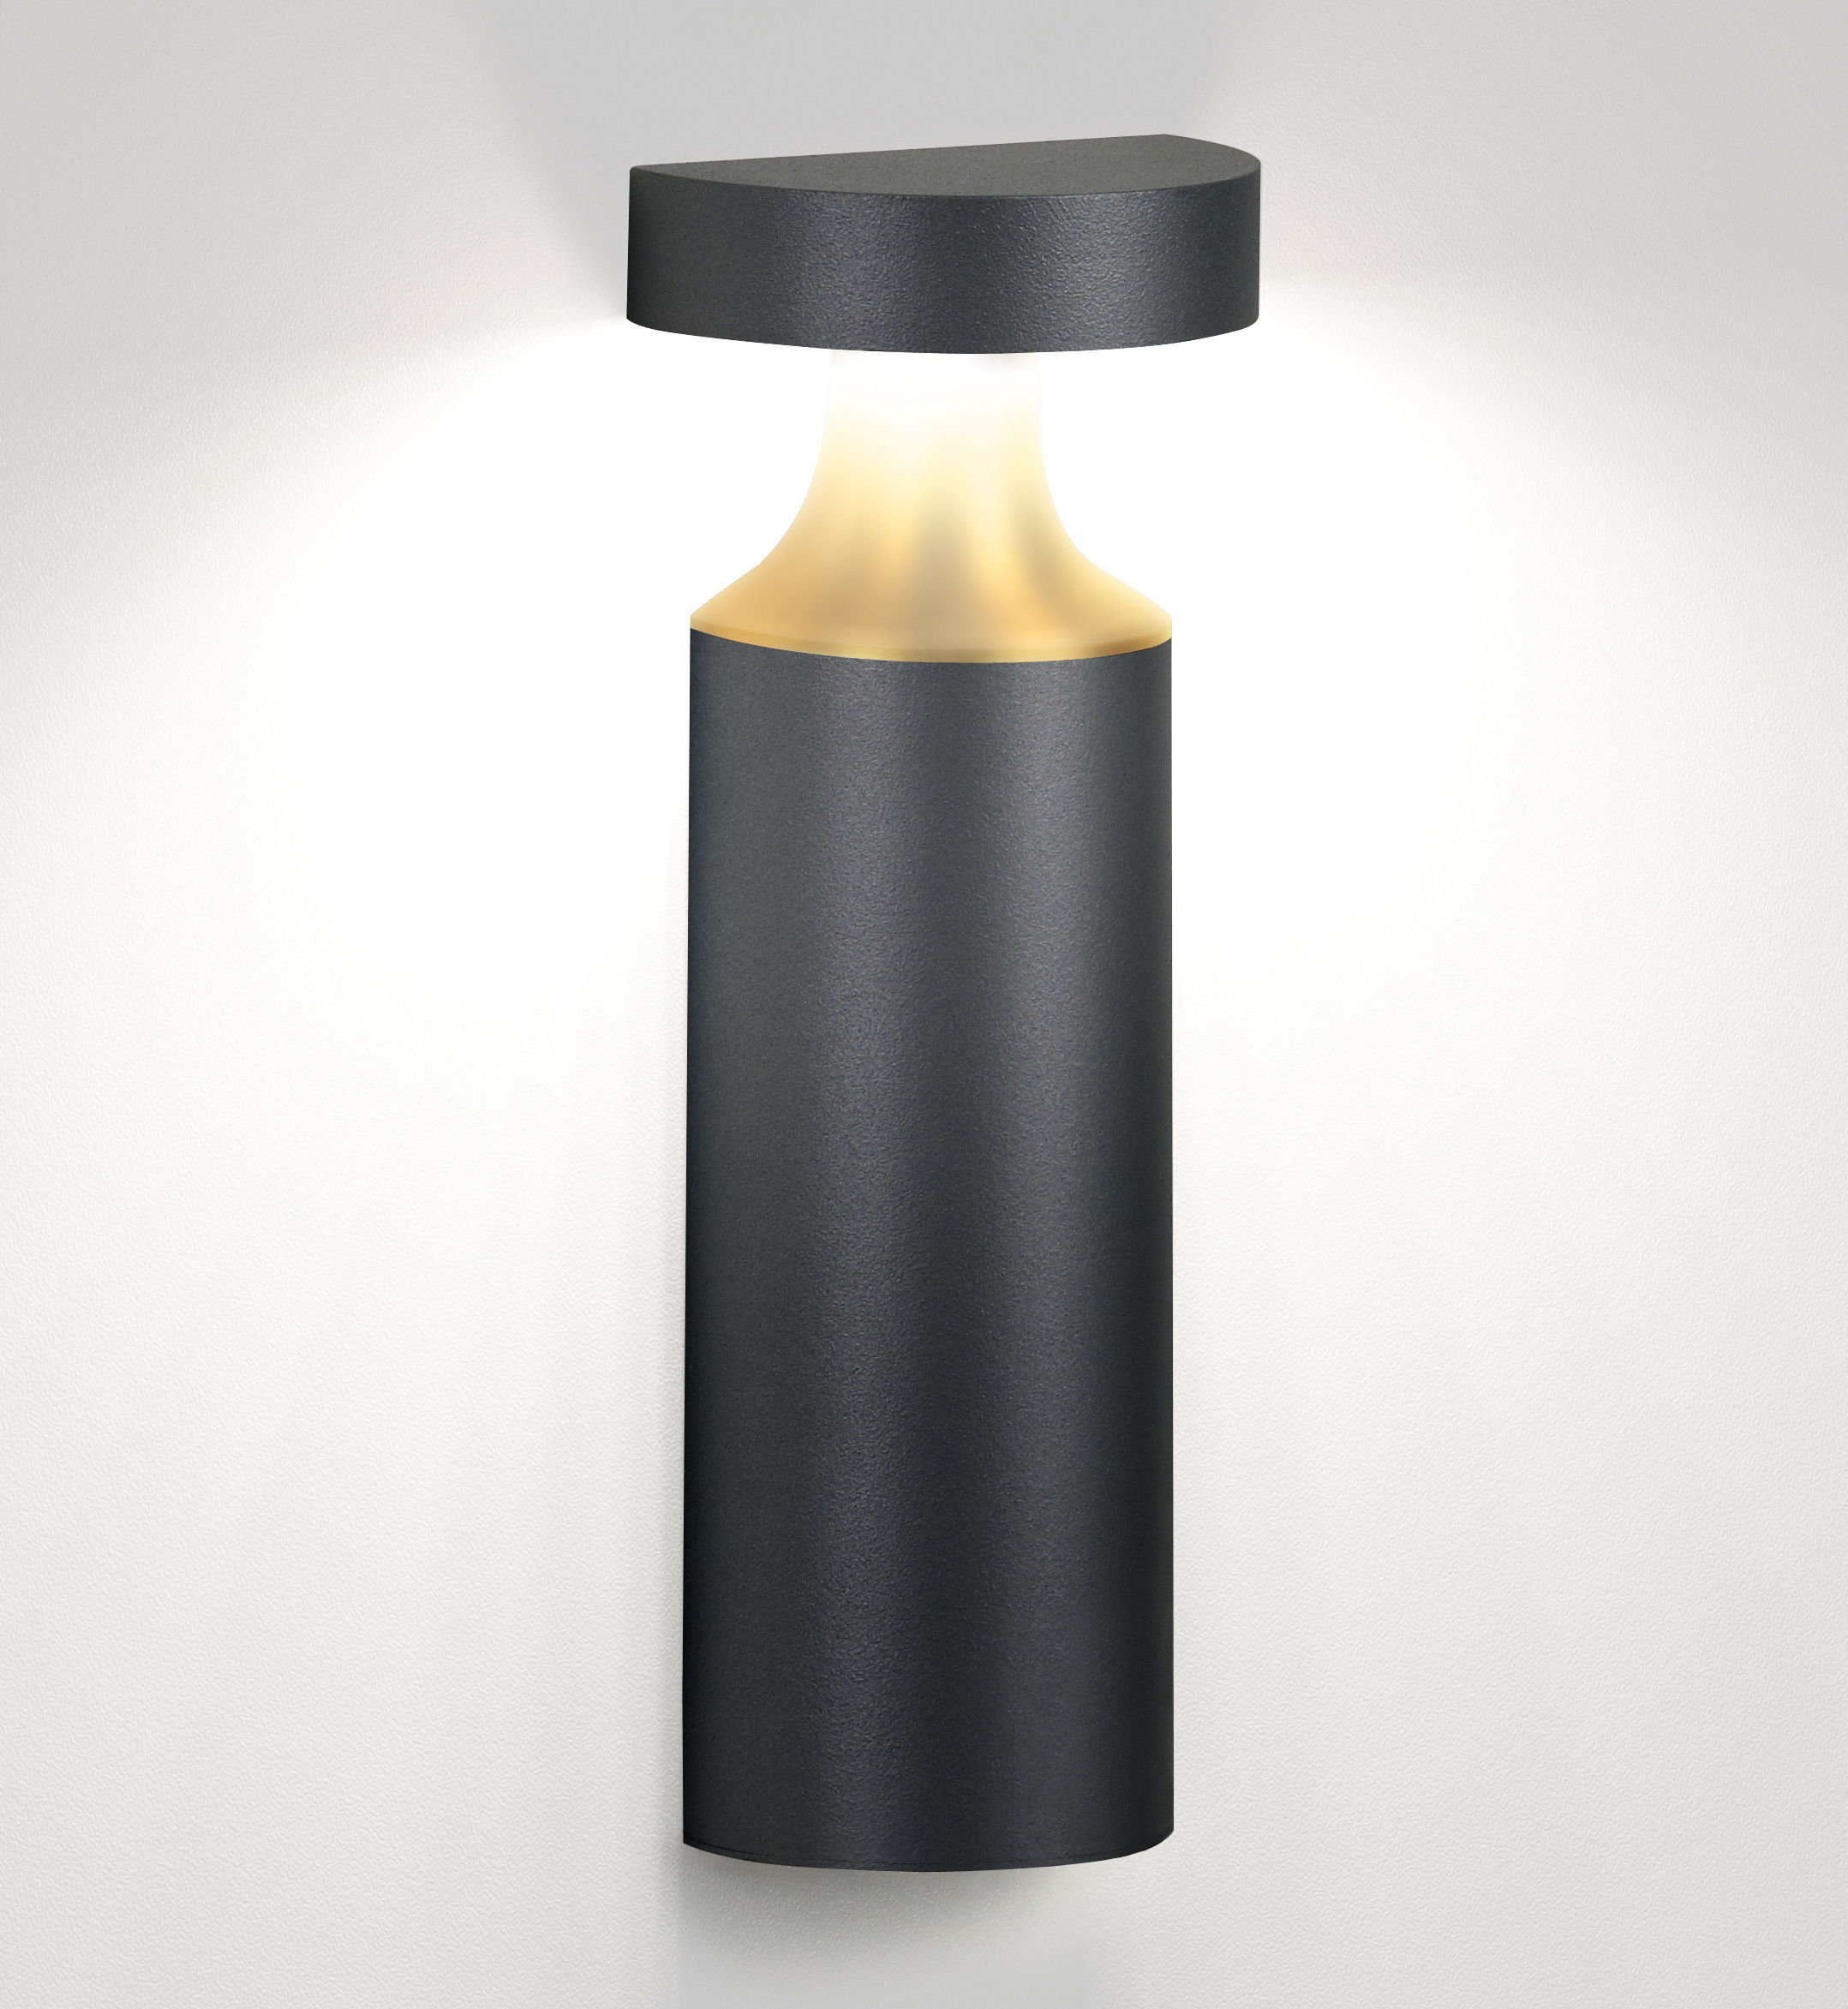 Bazil 60 LED Wall light Anthracite grey / gold by Delta Light